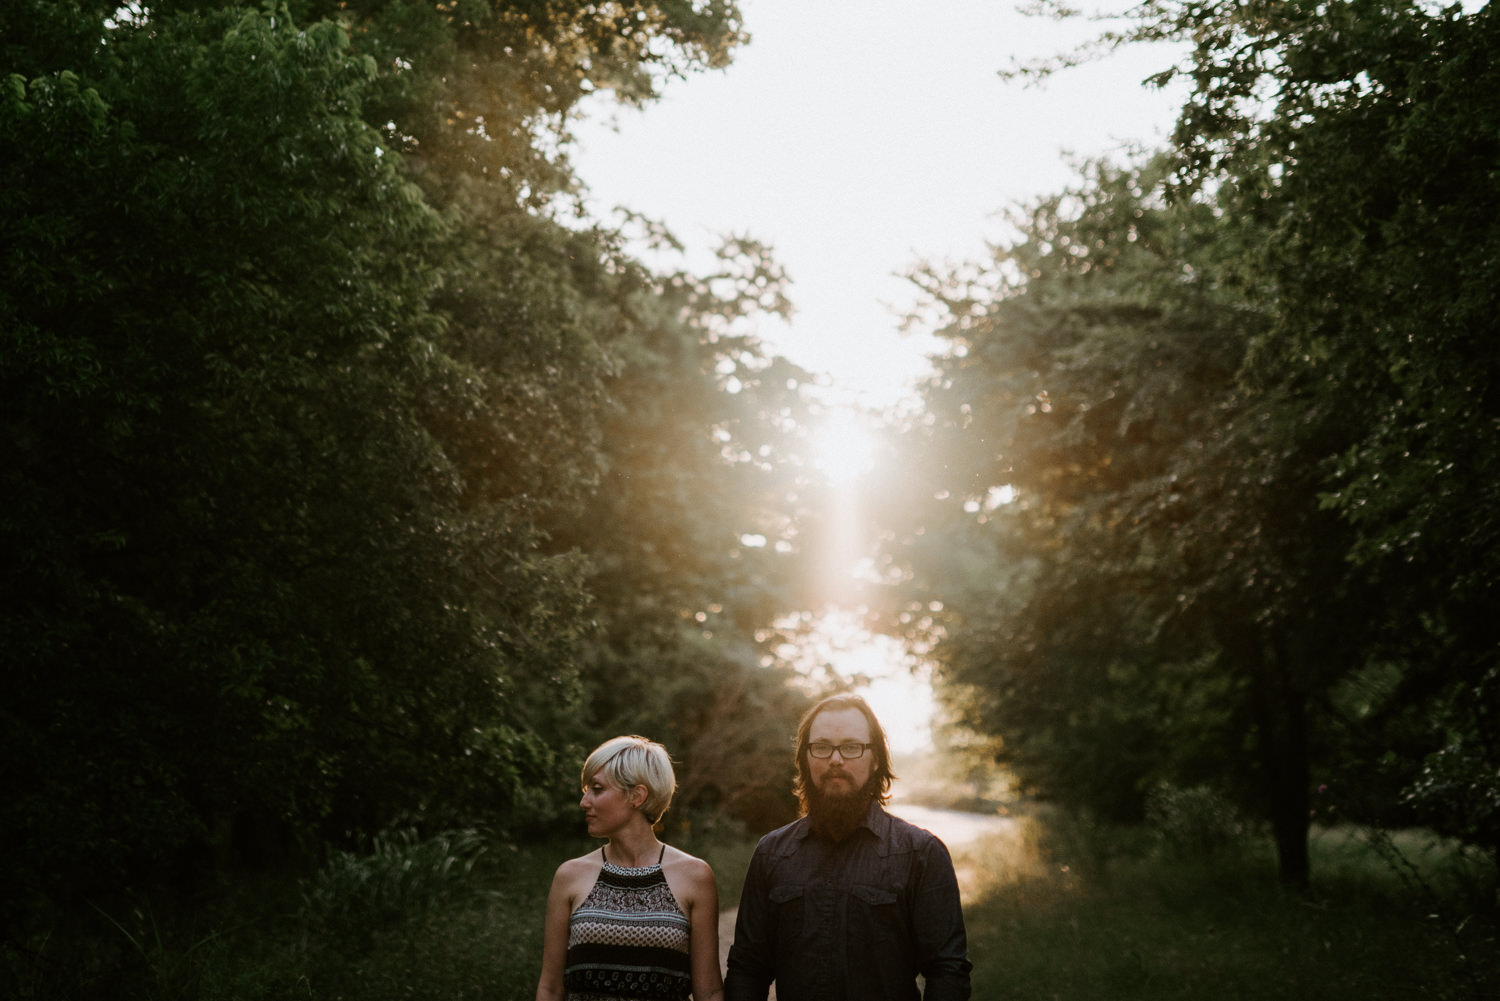 Engagement Photos in East Austin